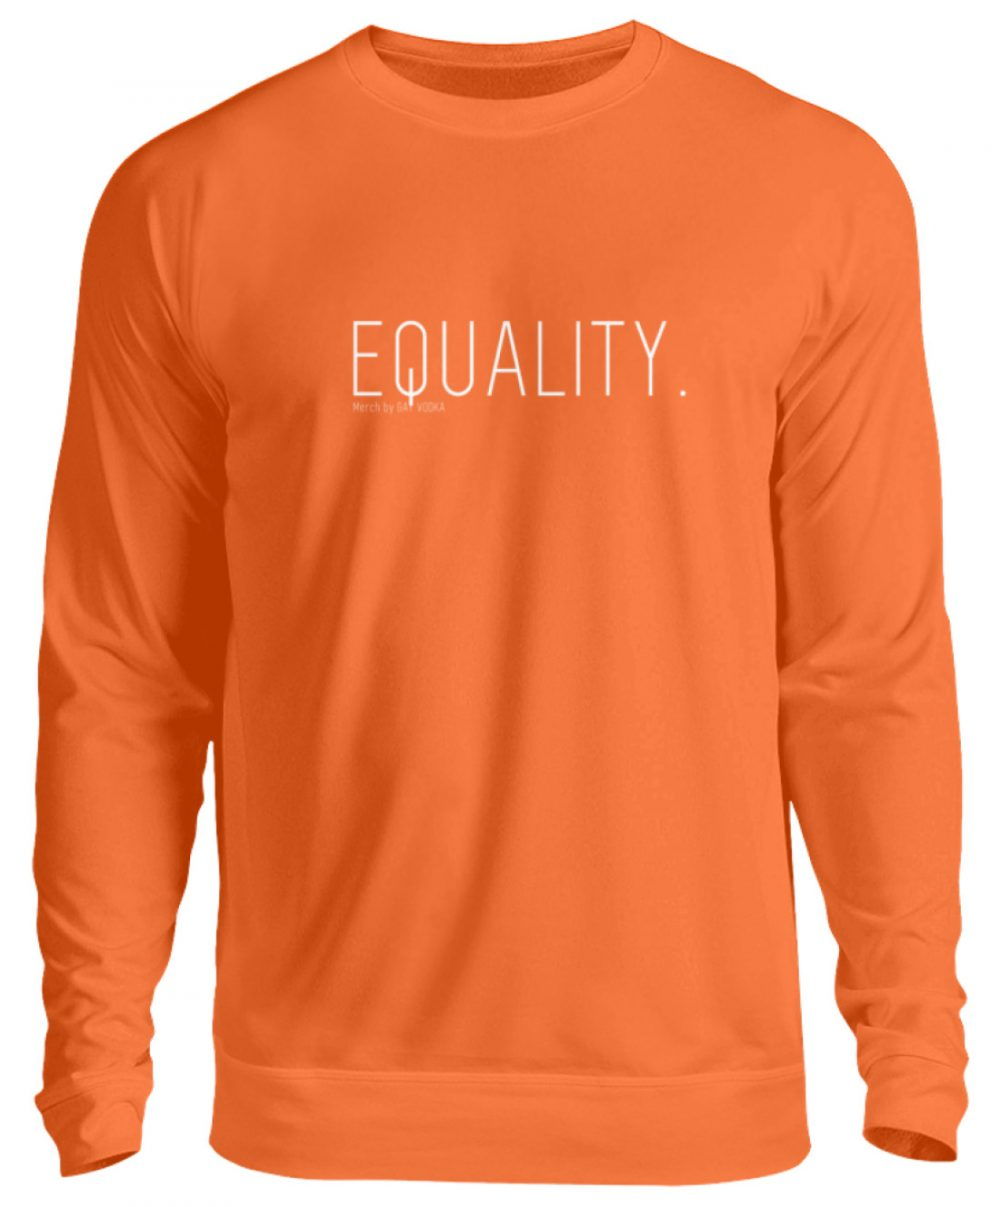 EQUALITY. - Unisex Pullover-1692